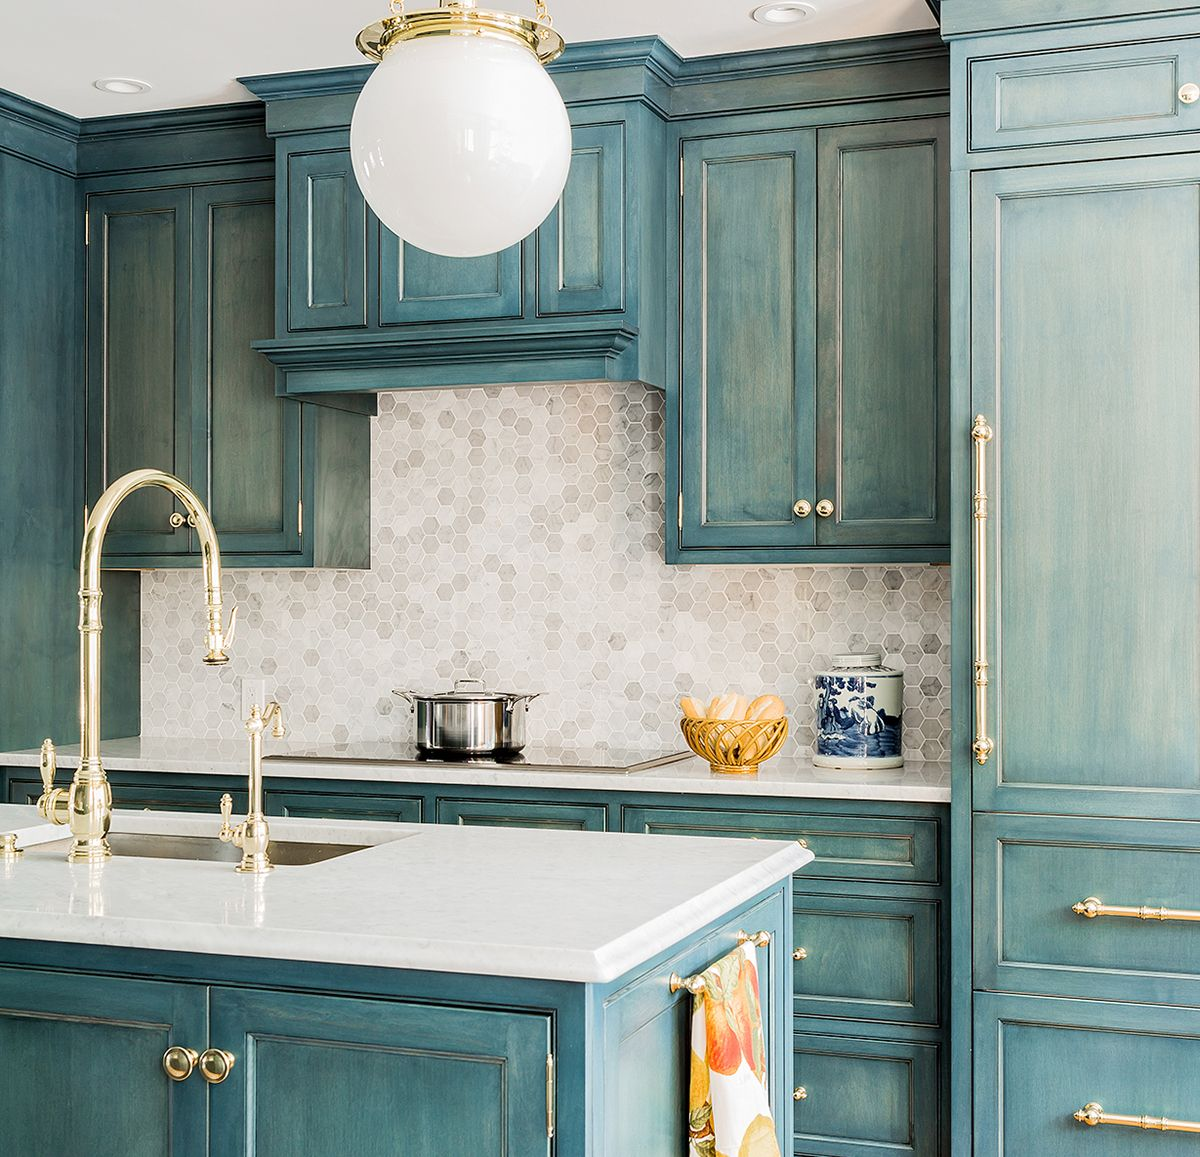 7 Of The Coolest Kitchens From Around The World | Kitchen ...